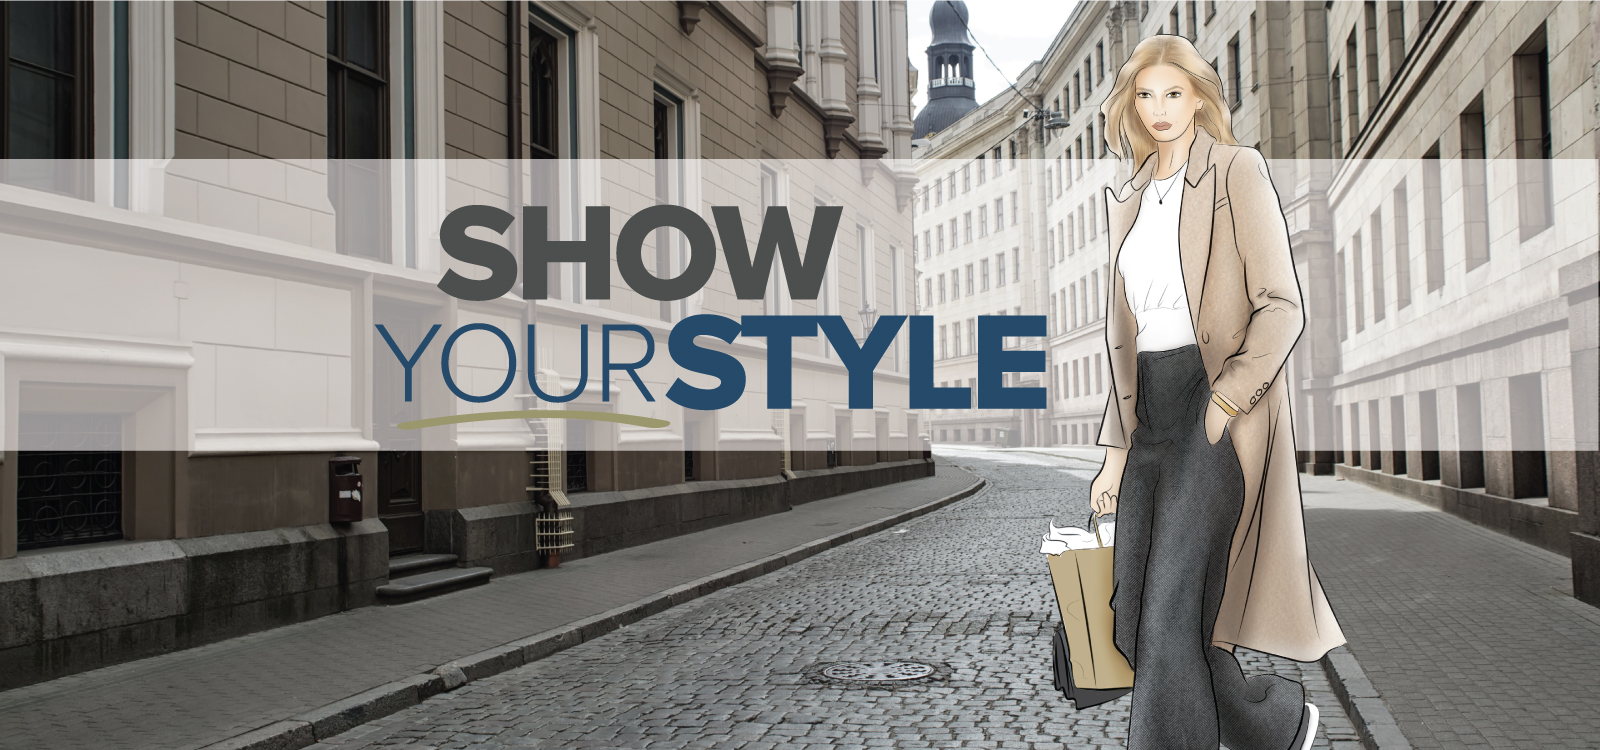 Fall_ShowYourStyle_1600x750_Sport_0616